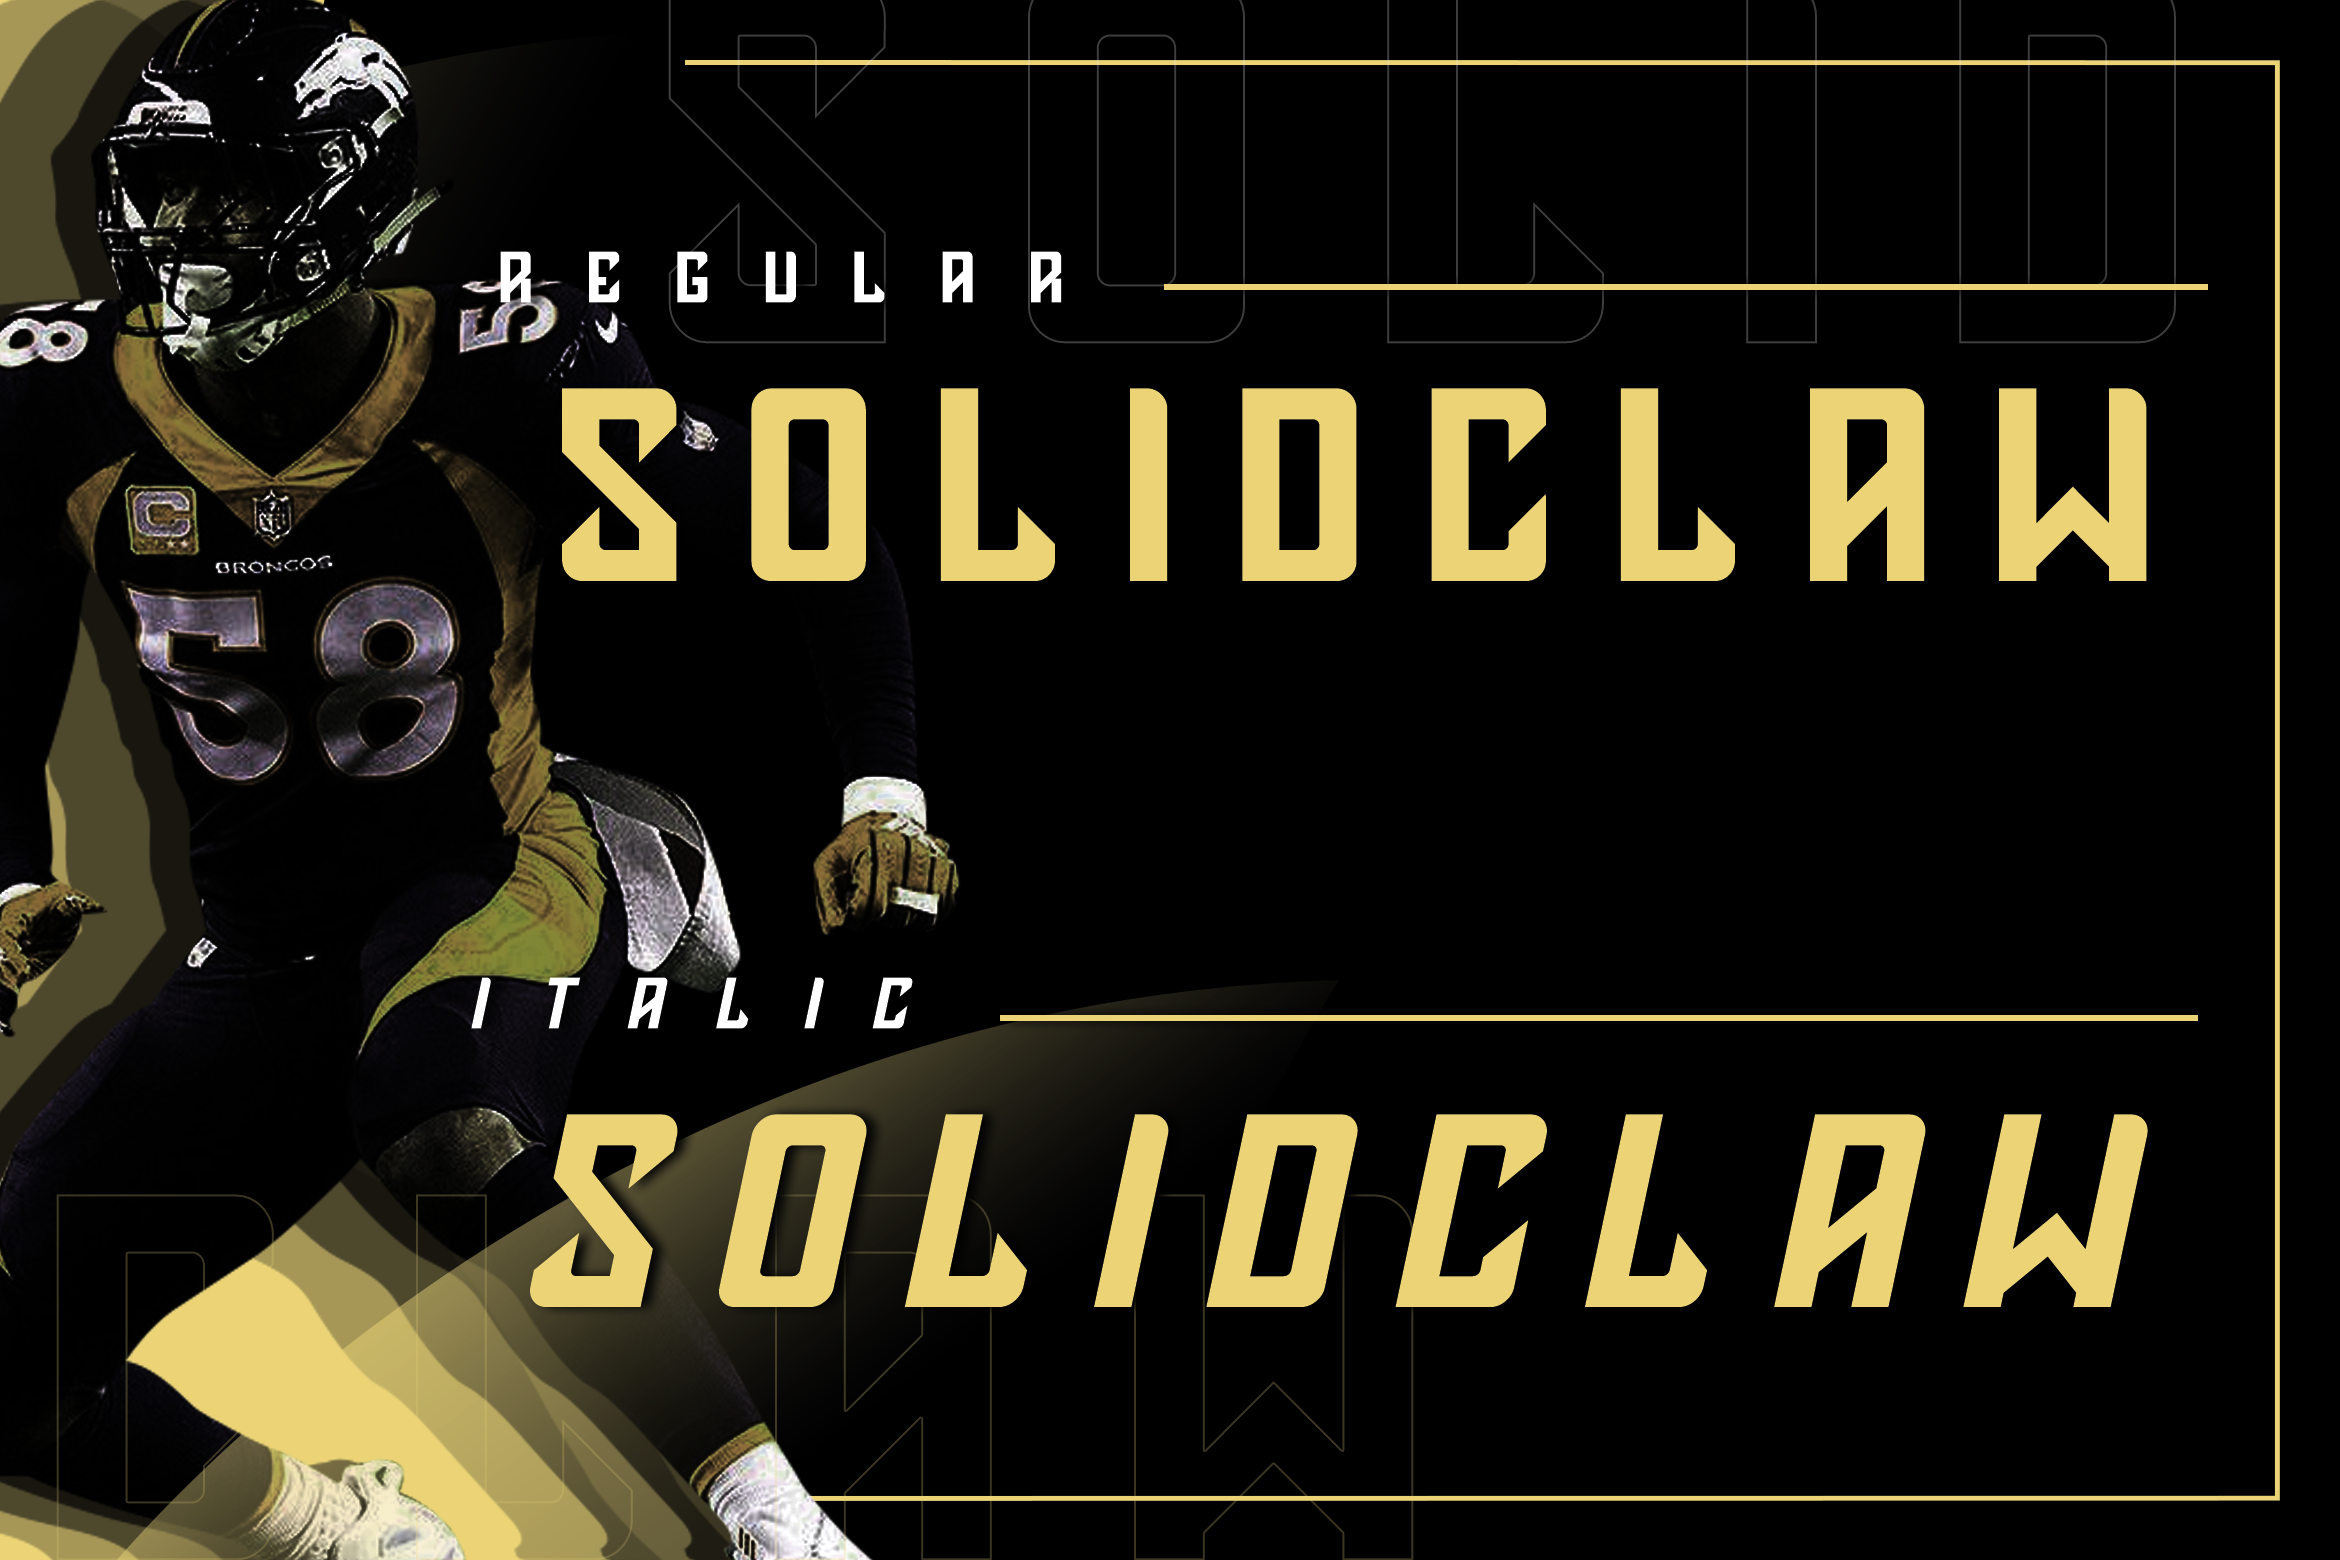 Solidclaw Display font example image 2